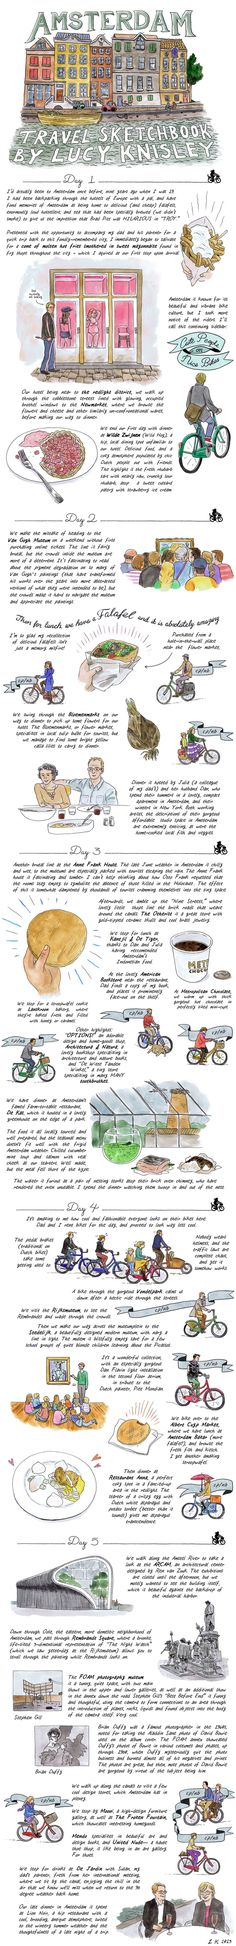 cartoonist Lucy Knisley... shares part of the story of a recent trip she took to Amsterdam. While there, she spent a majority of her time on two wheels exploring the city's stunning art scene and shops—including one that specializes in toothbrushes—and indulging in plenty of amazing local eats, from falafel to stroopwafel to potato sorbet.